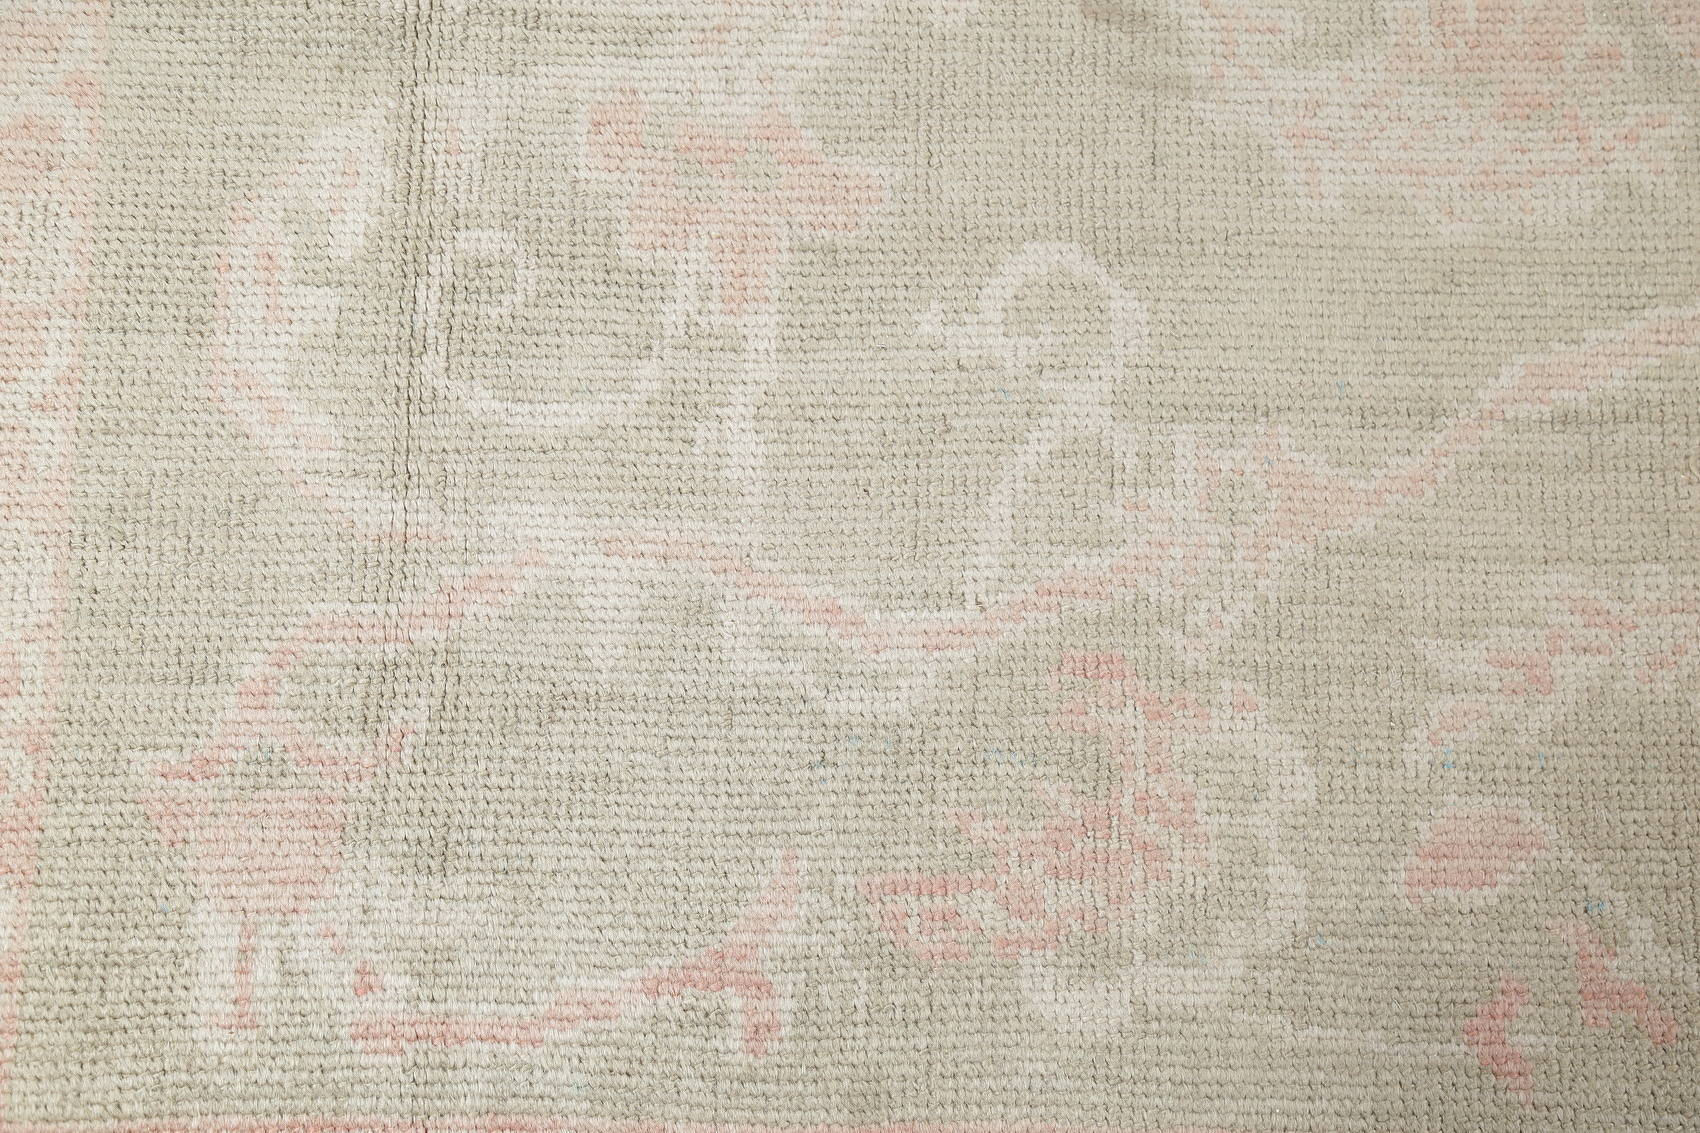 Vegetable Dye Muted Sage Green Oushak Turkish Hand-Knotted 8x11 Area Rug